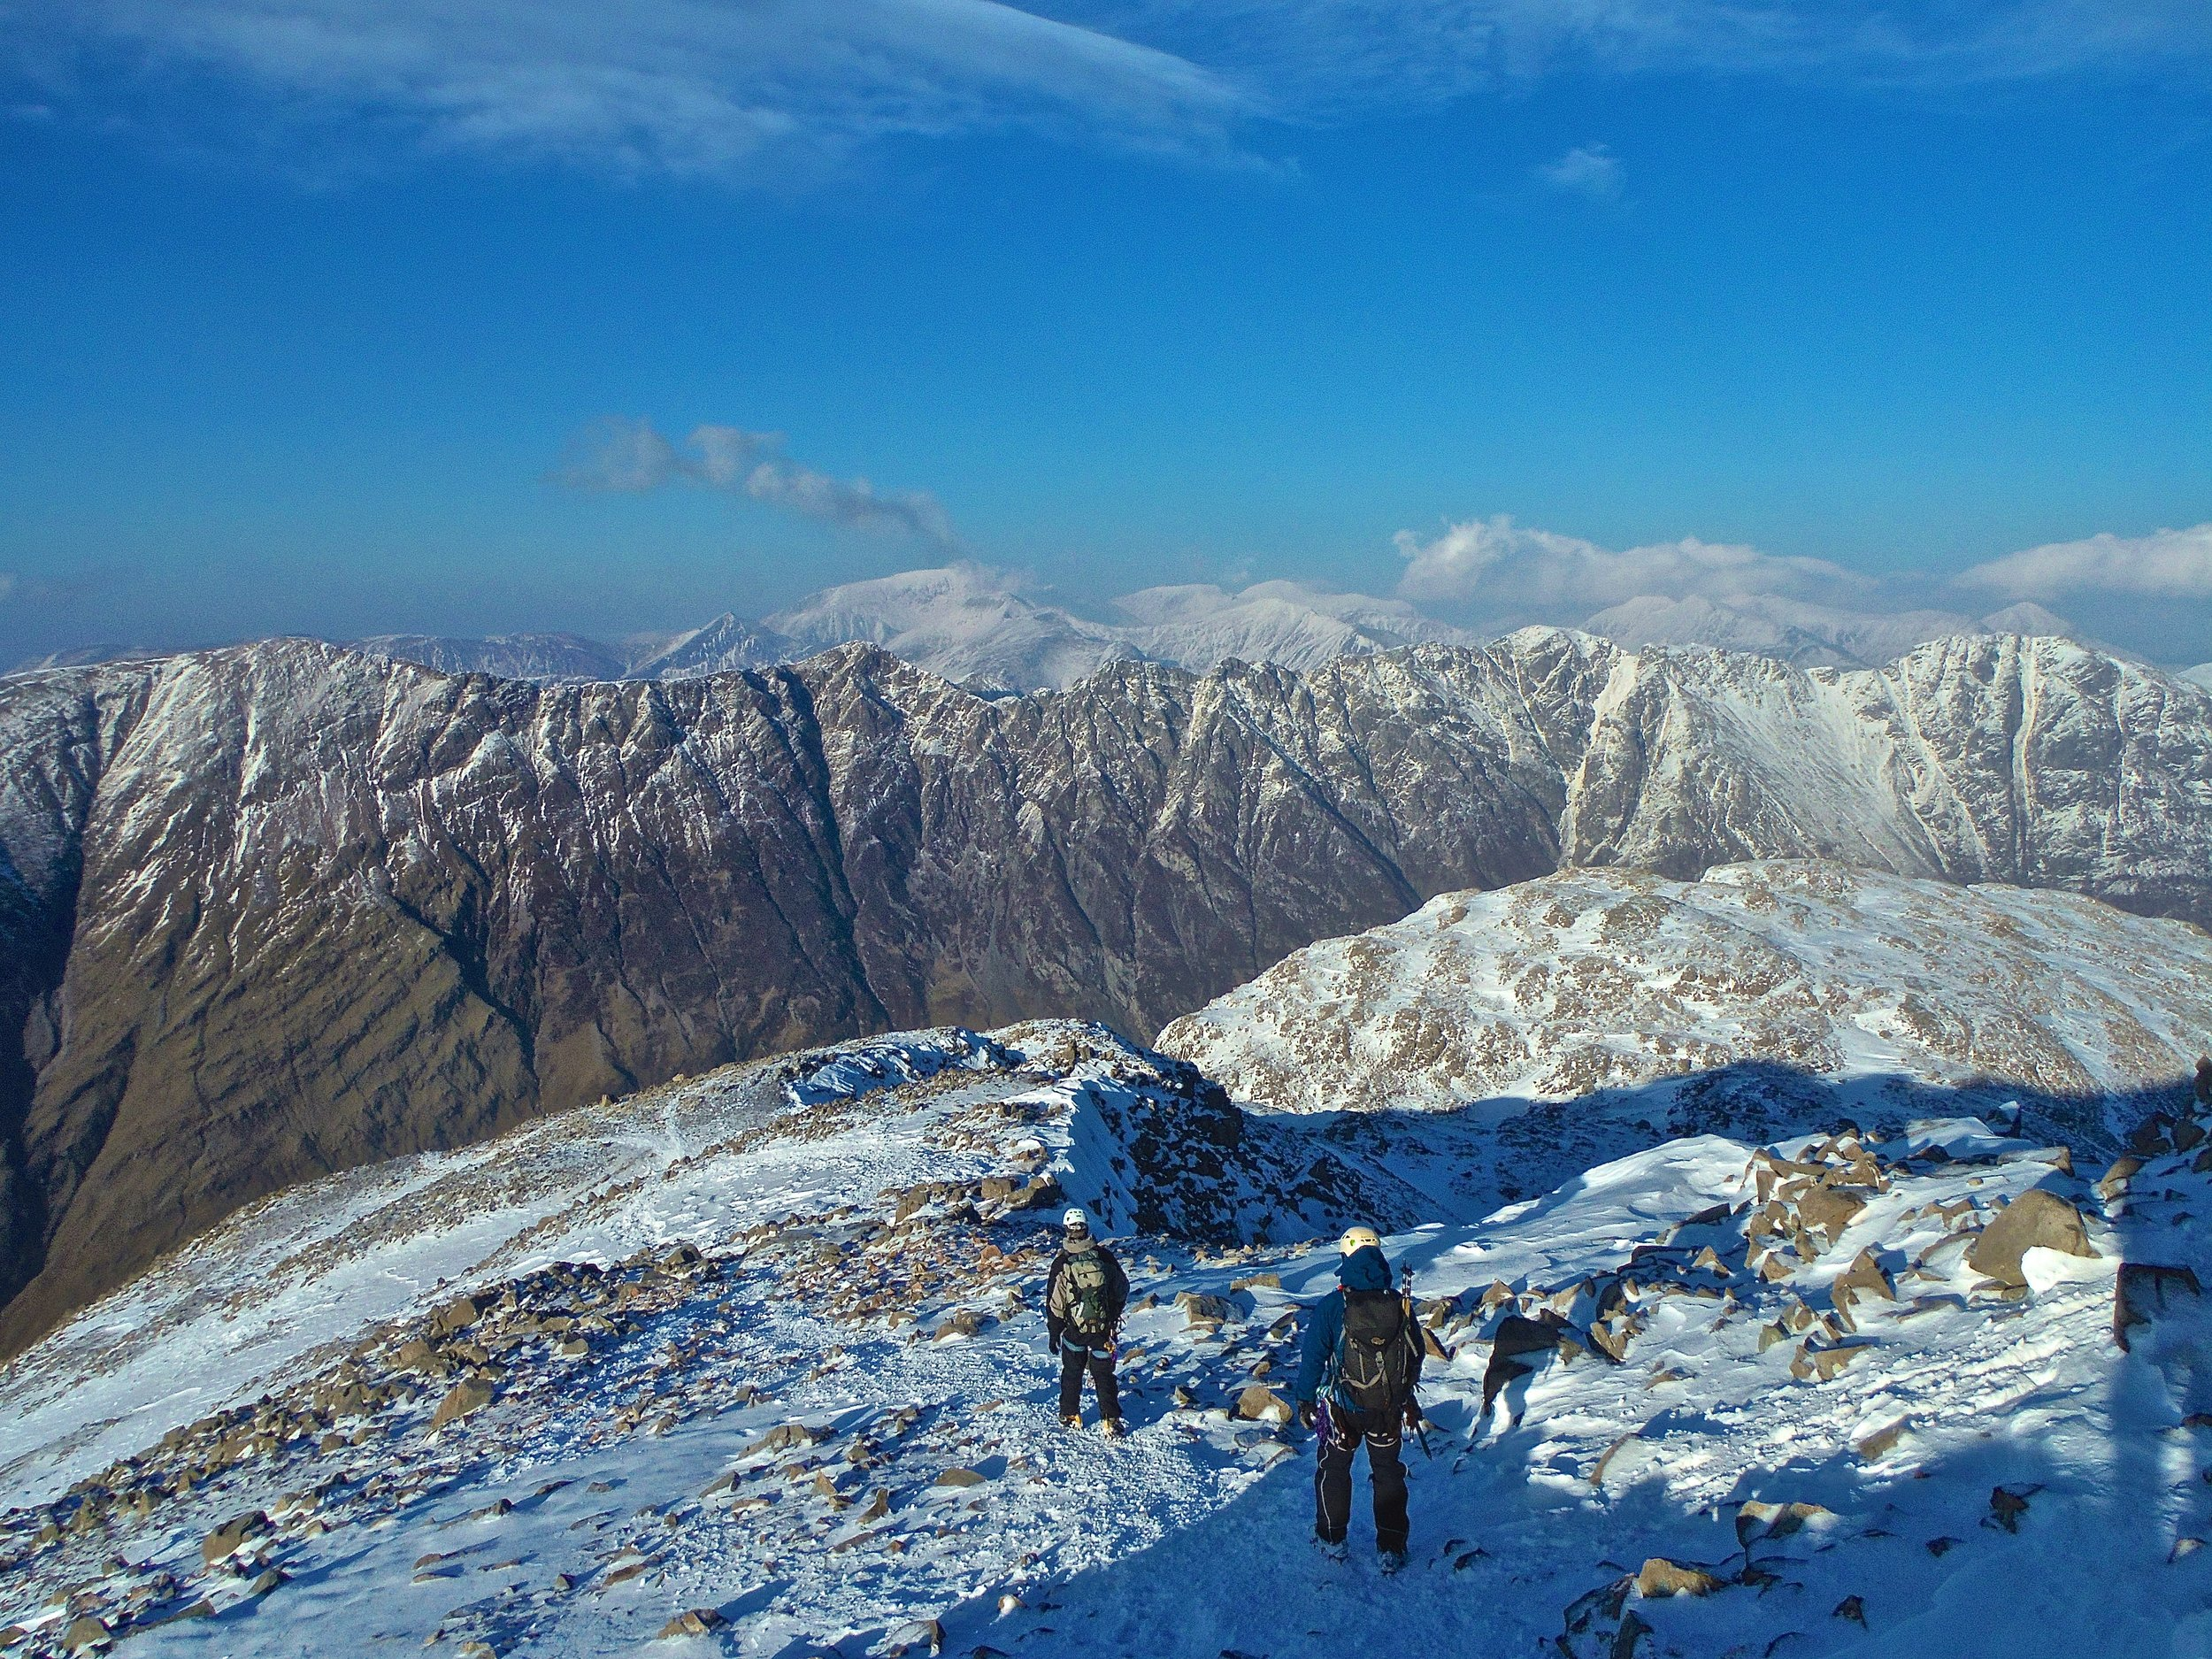 Wintery perfection - The Aonach Eagach Ridge on the sky line